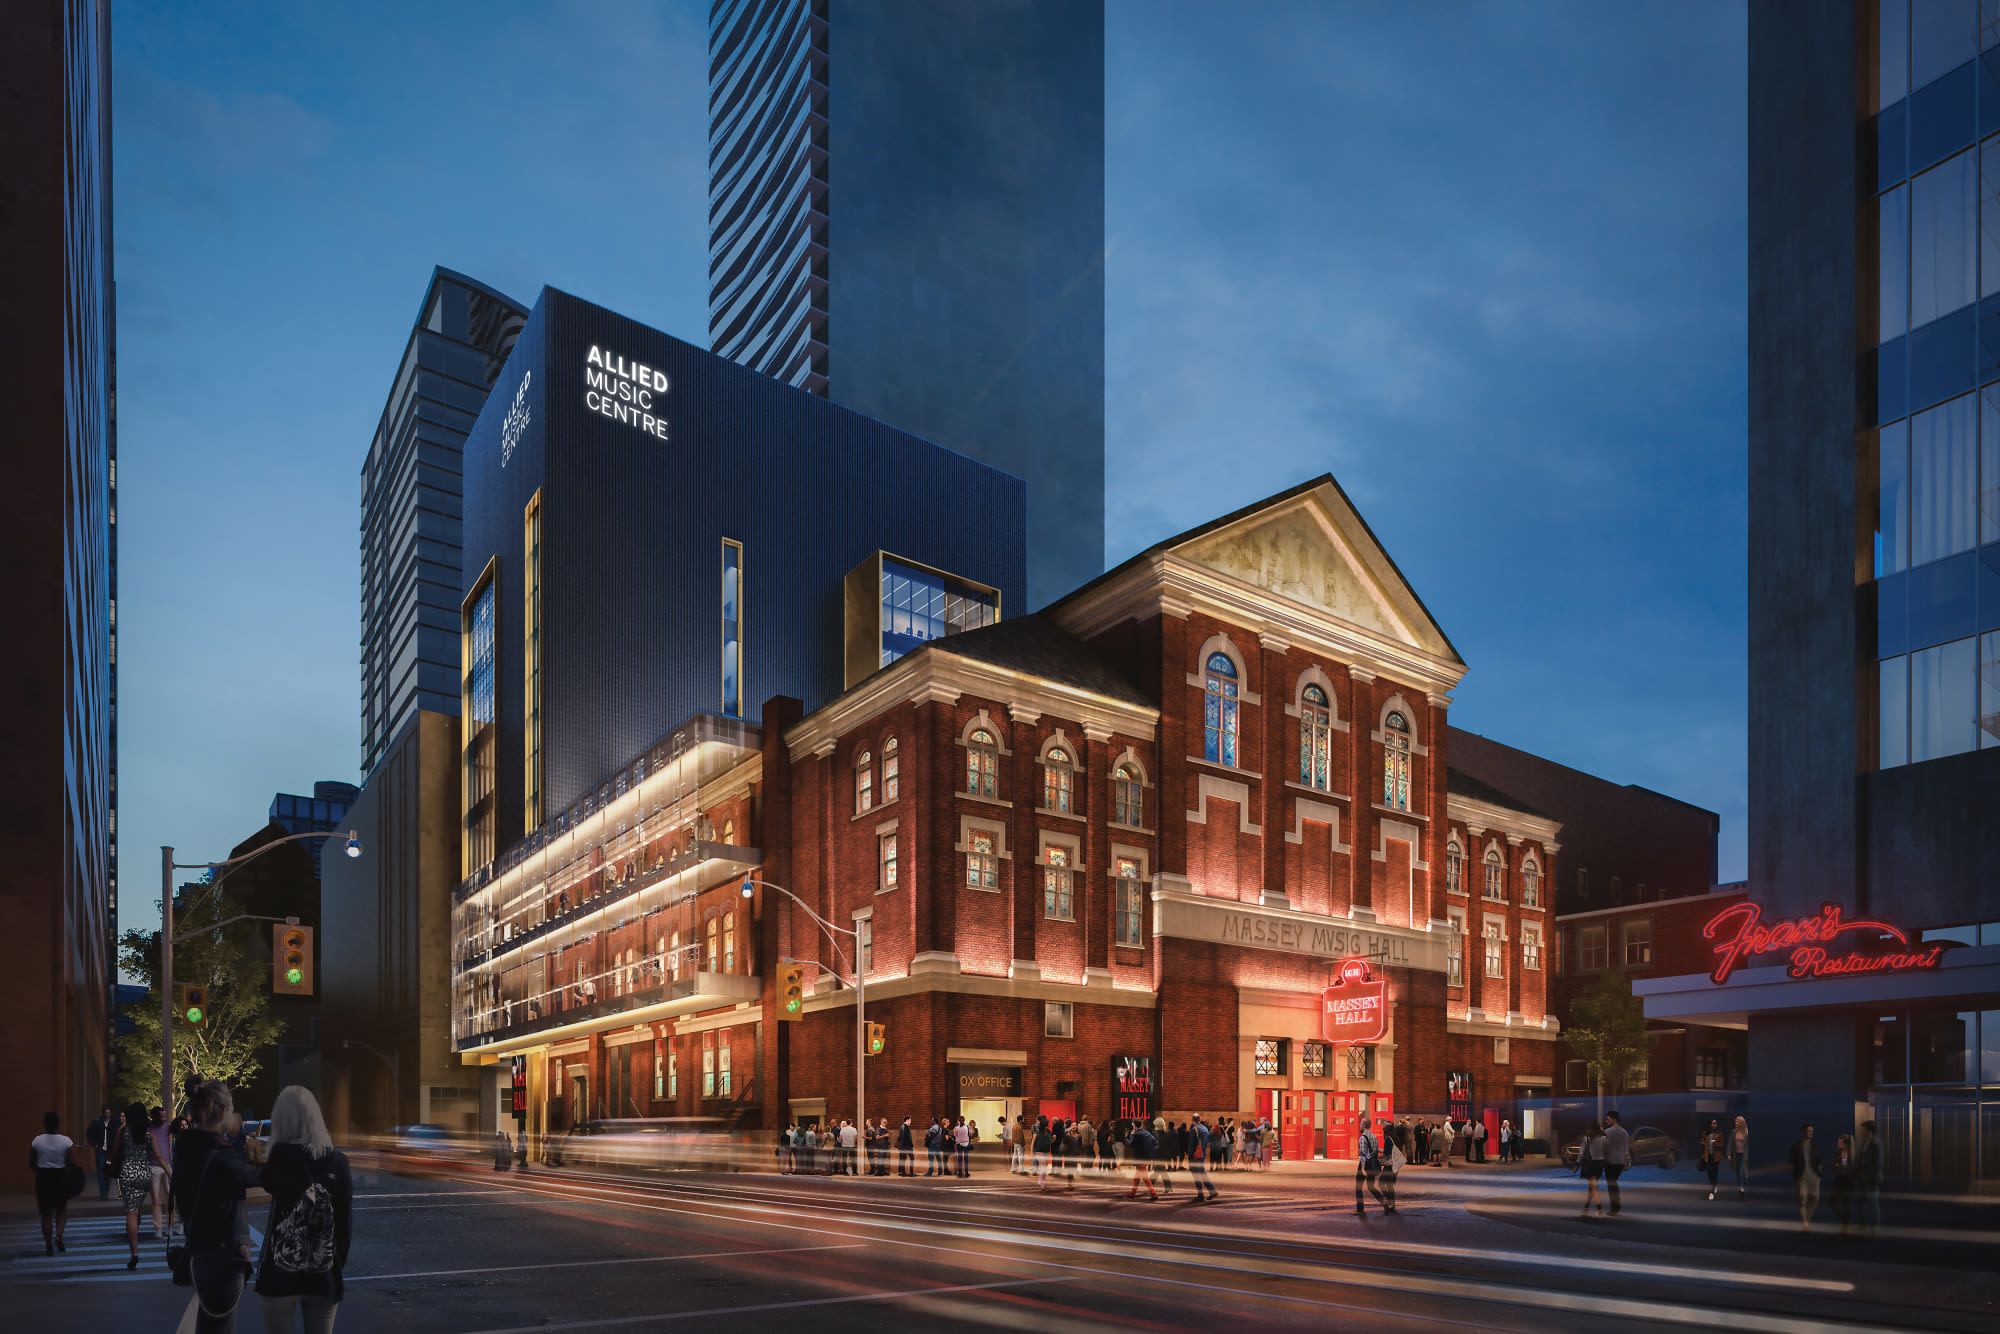 Exterior Rendering of the Allied Music Centre